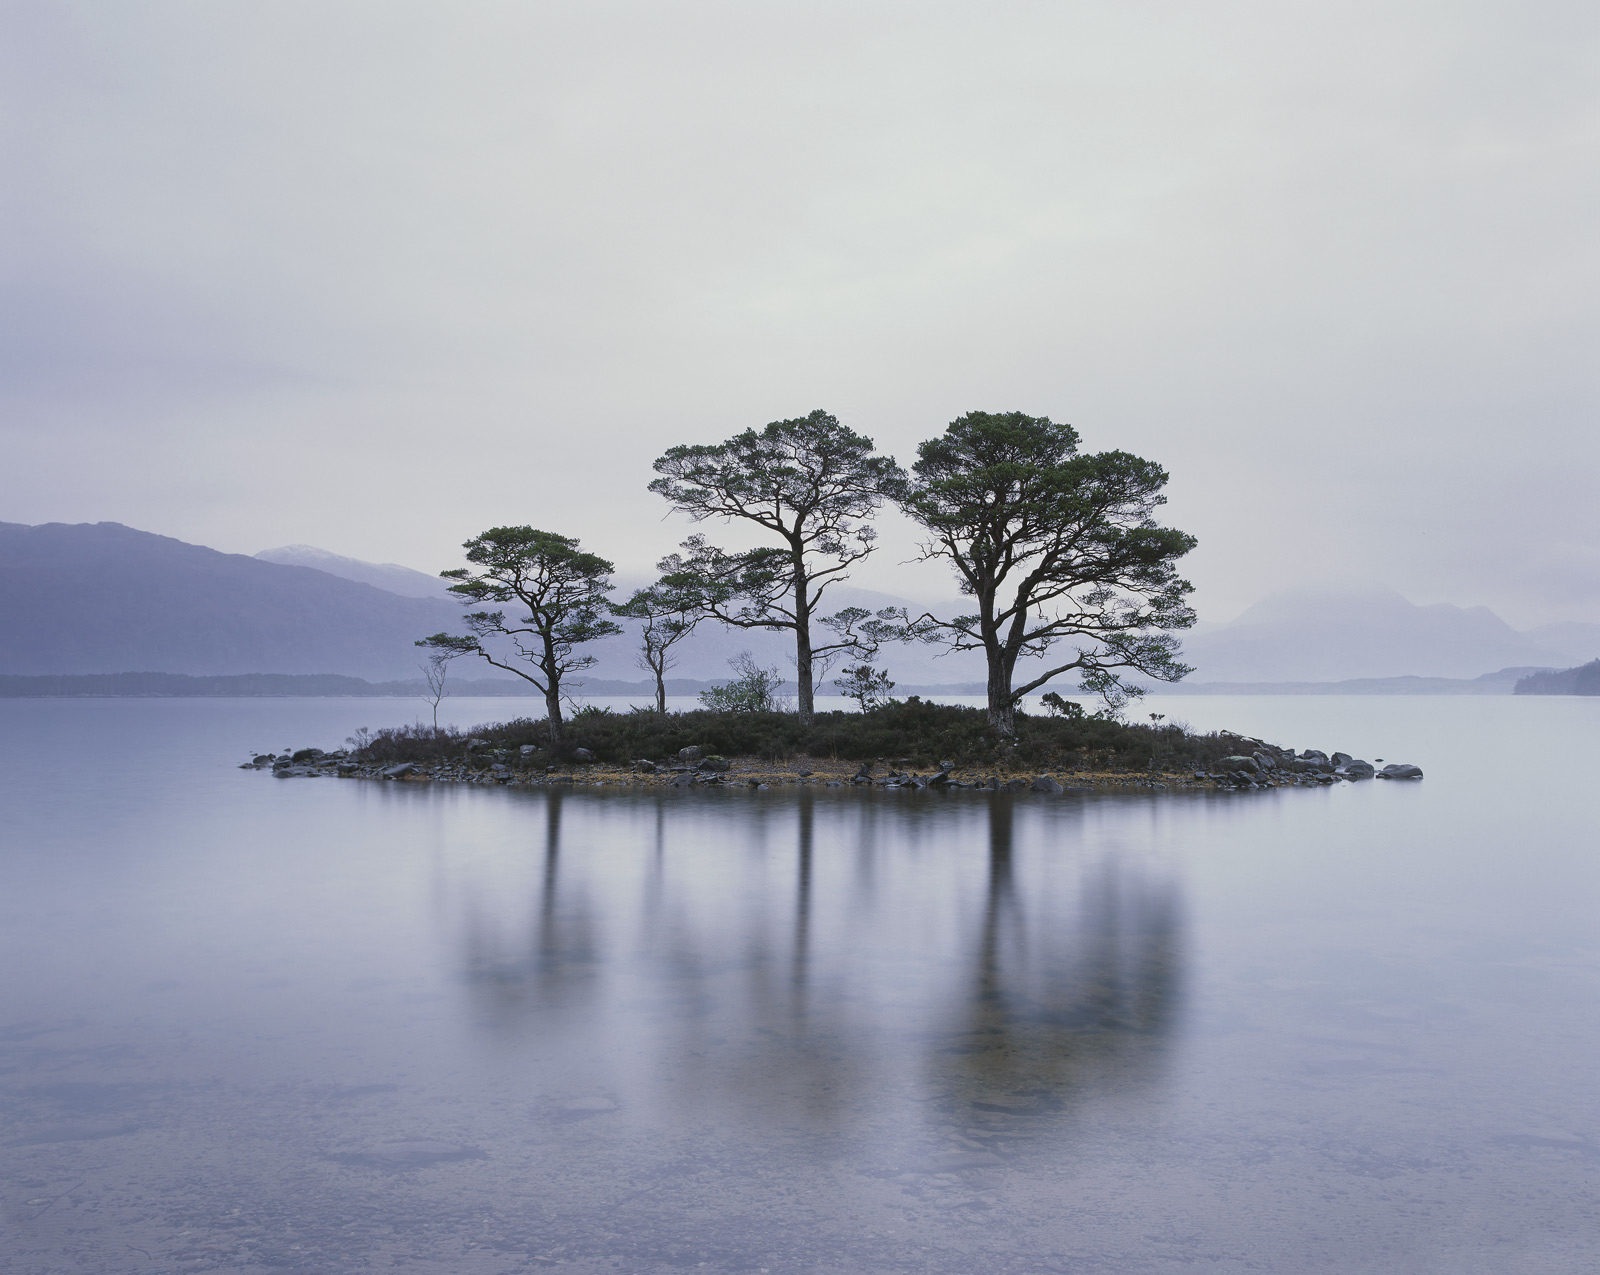 Slattadale Island, Slattadale, Torridon, Scotland, cold, dreary, understated, soft, light, island, trees, reflection, Sl, photo